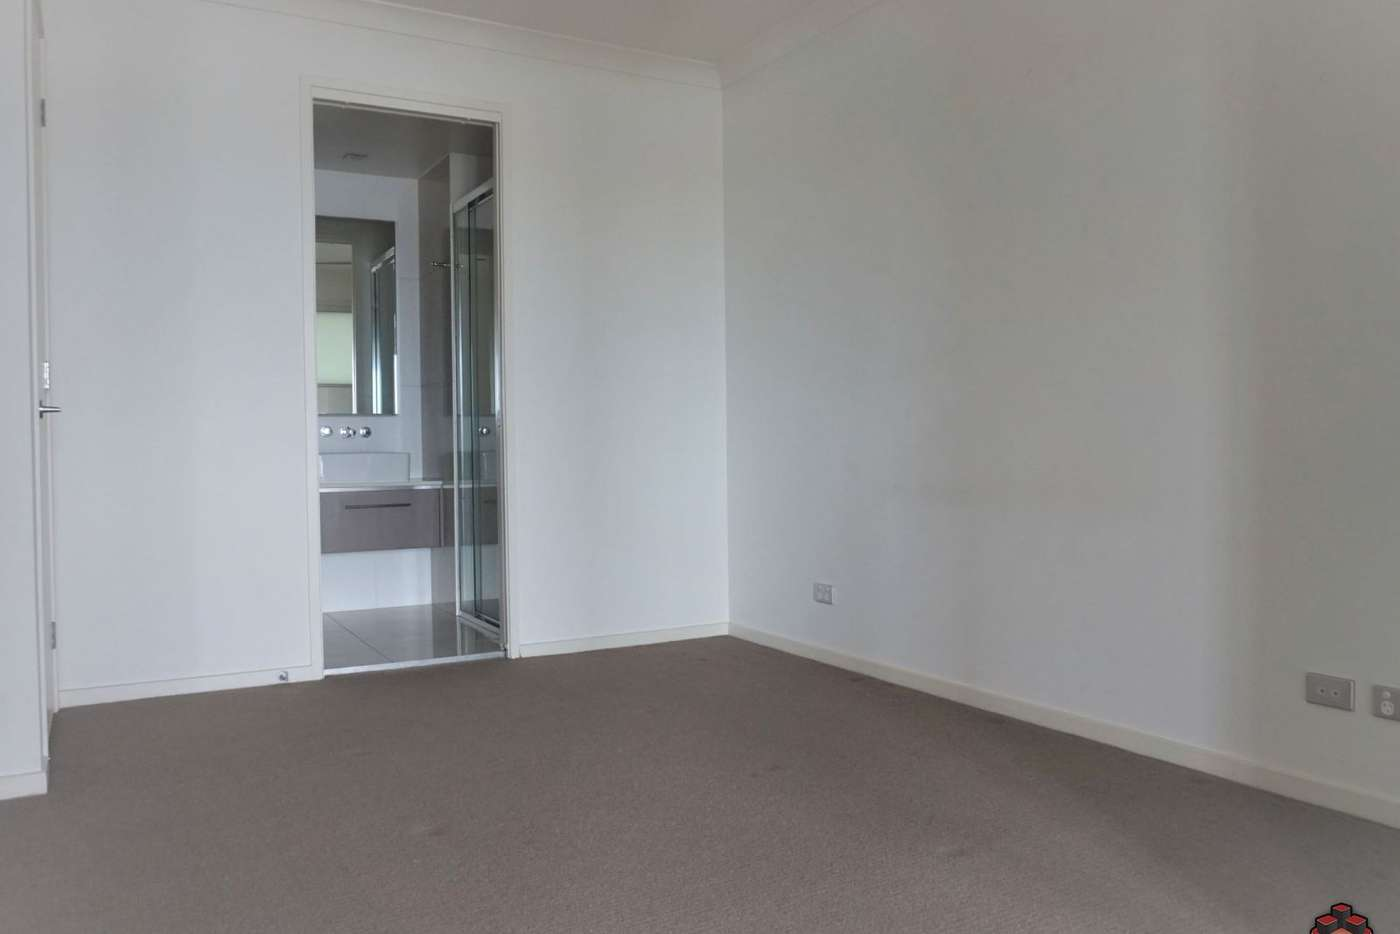 Sixth view of Homely apartment listing, ID:3876862/3030 The Boulevard, Carrara QLD 4211